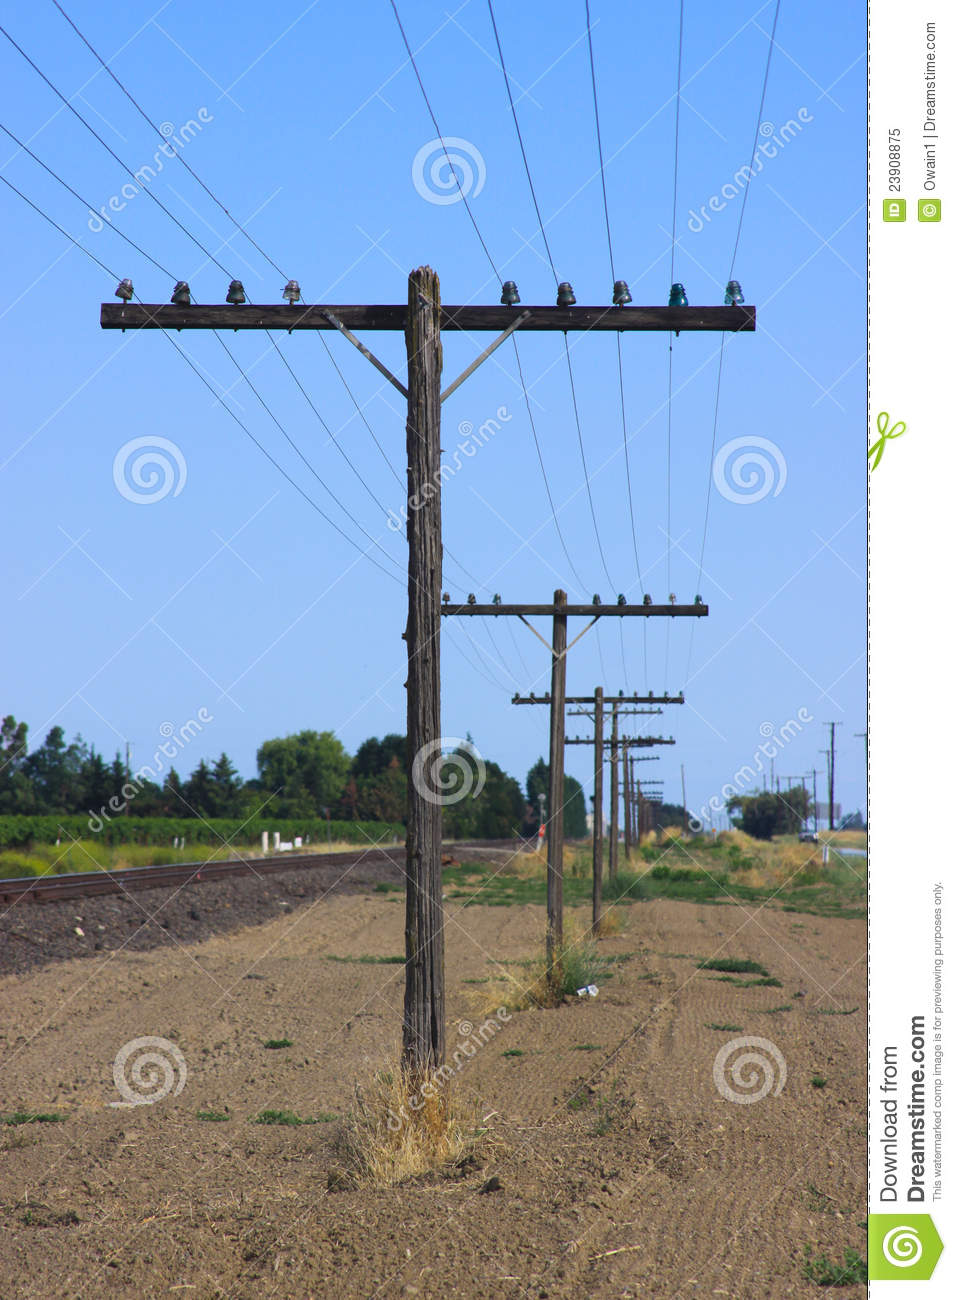 telephone poles beside train tracks royalty free stock Telephone Clip Art Man On a Telaphone Pole